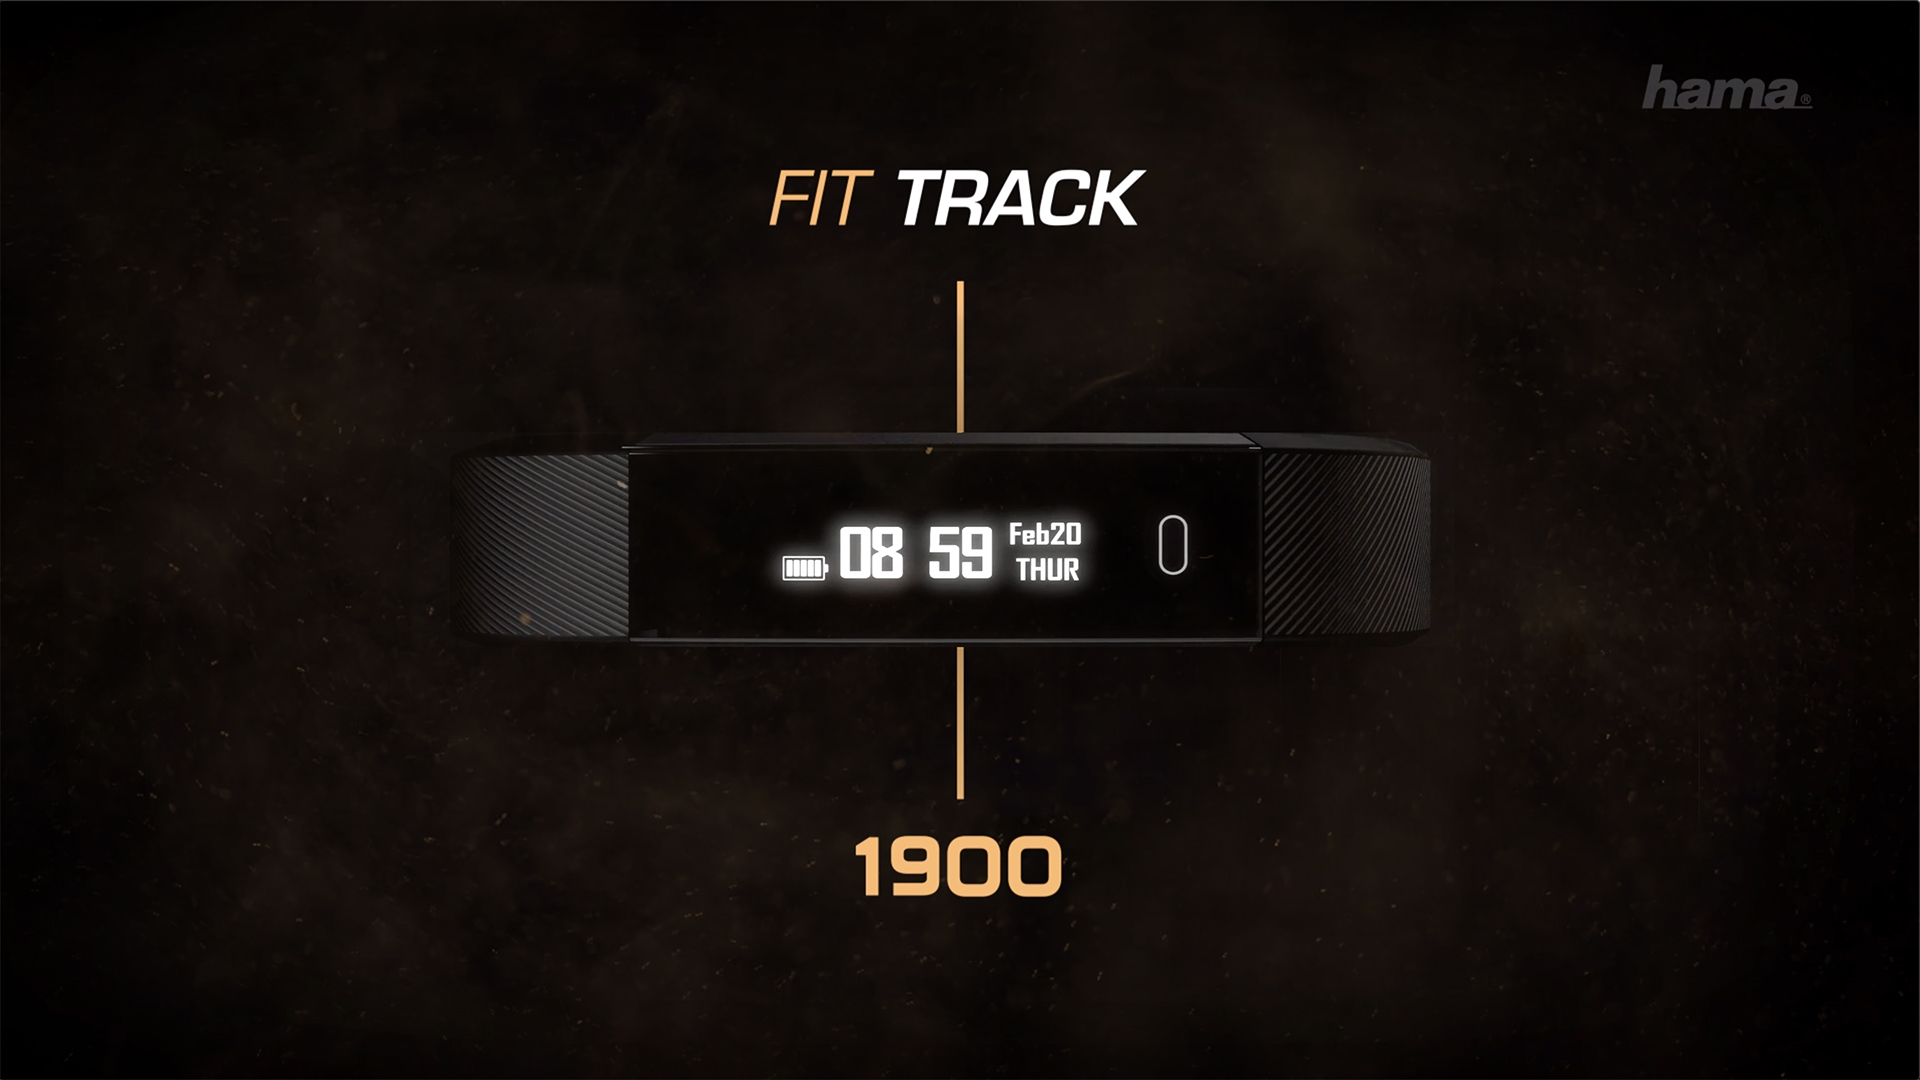 "Hama ""Fit Track 1900"" Fitness Tracker"